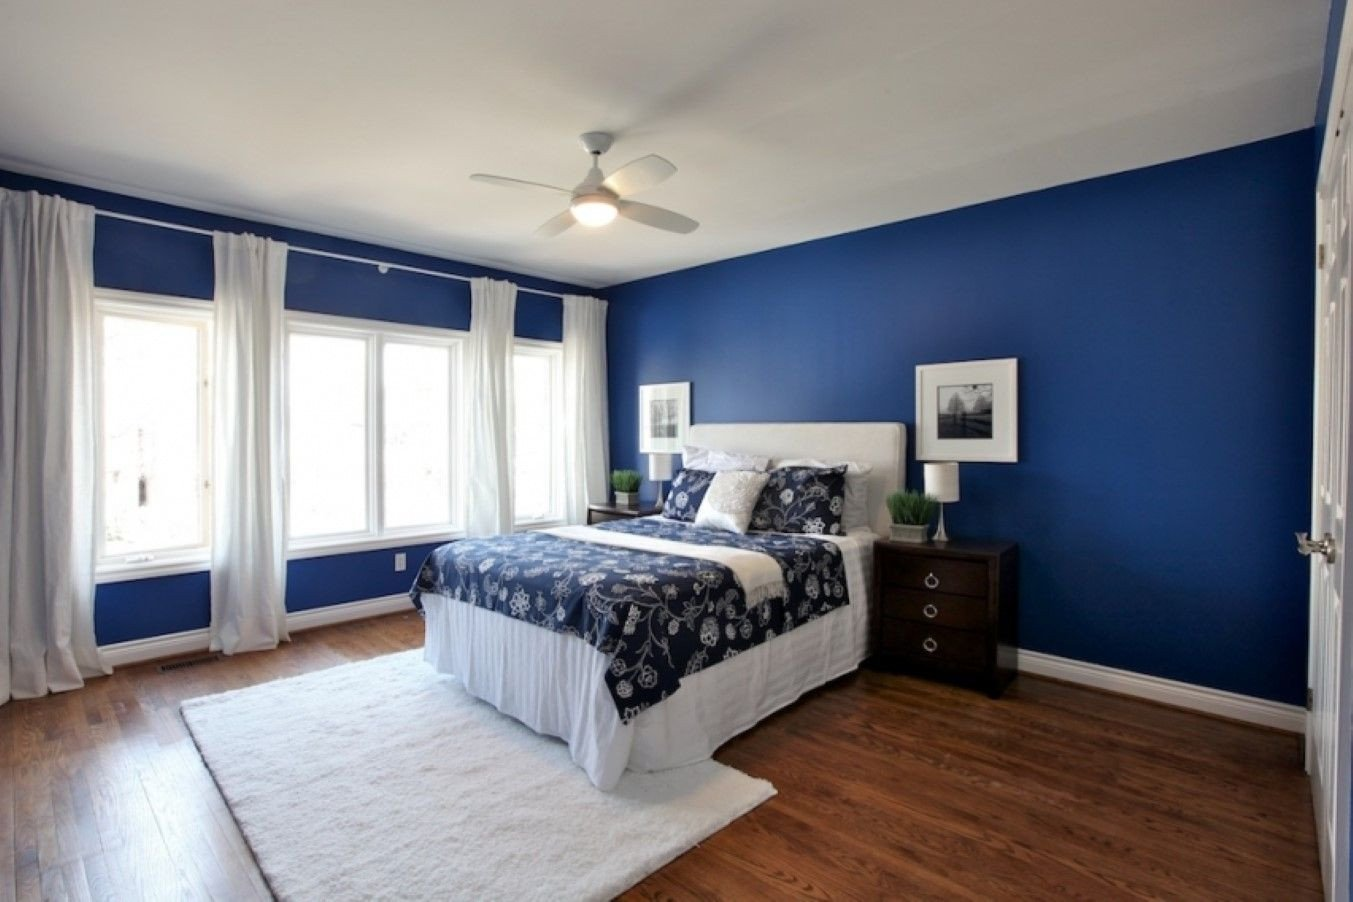 Navy and White Bedroom Elegant Image Result for Navy Blue and White Boys Room